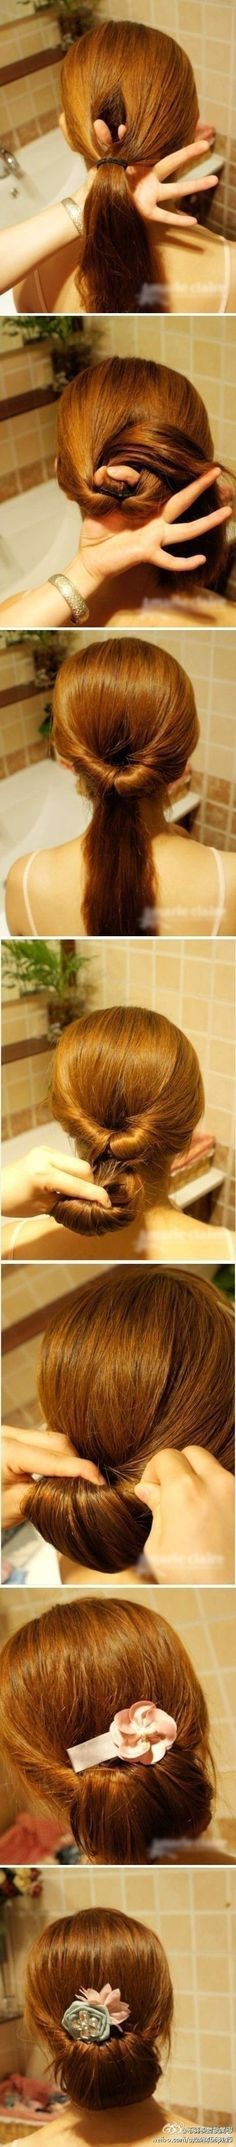 Do it yourself prom, homecoming or wedding hairdo!